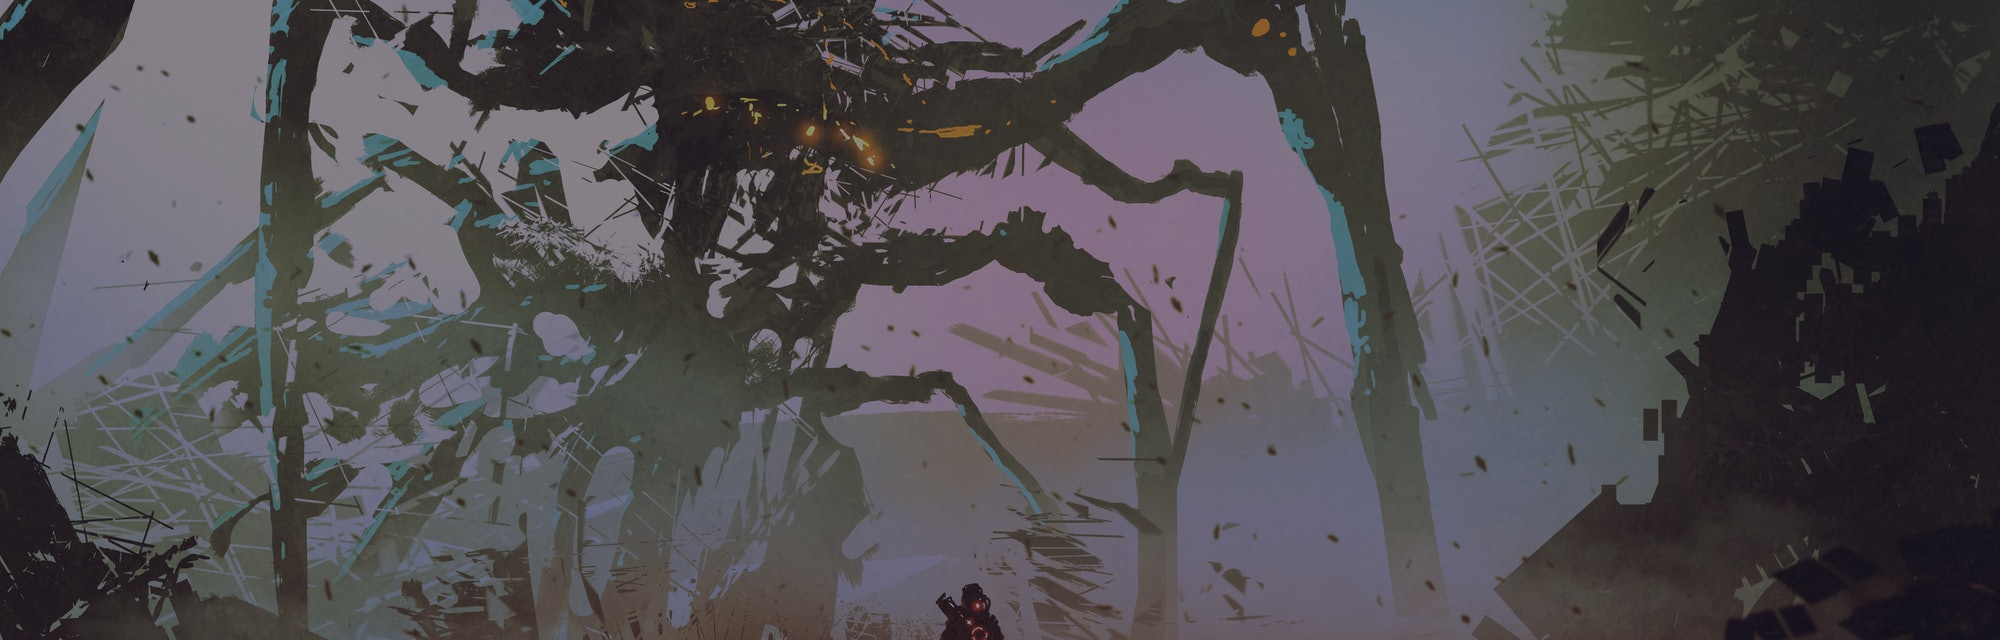 the man facing the giant spider robot, digital art style, illustration painting